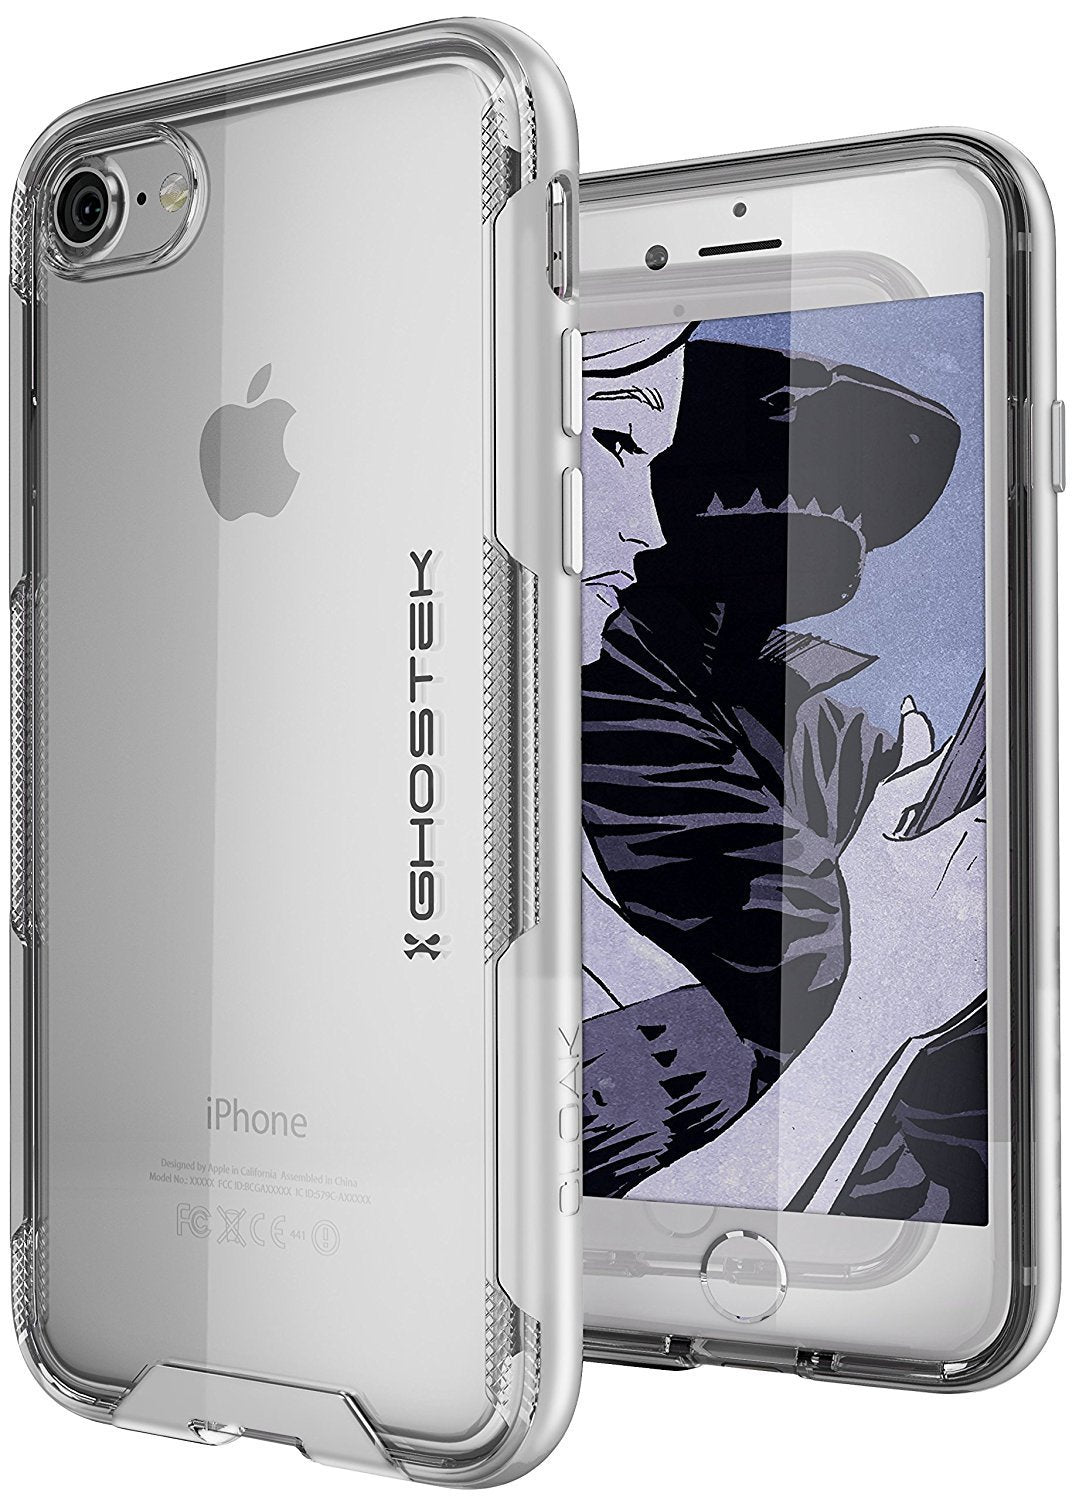 iPhone 7 Case, Ghostek Cloak 3 Series for iPhone 7 Clear Protective Case| Silver